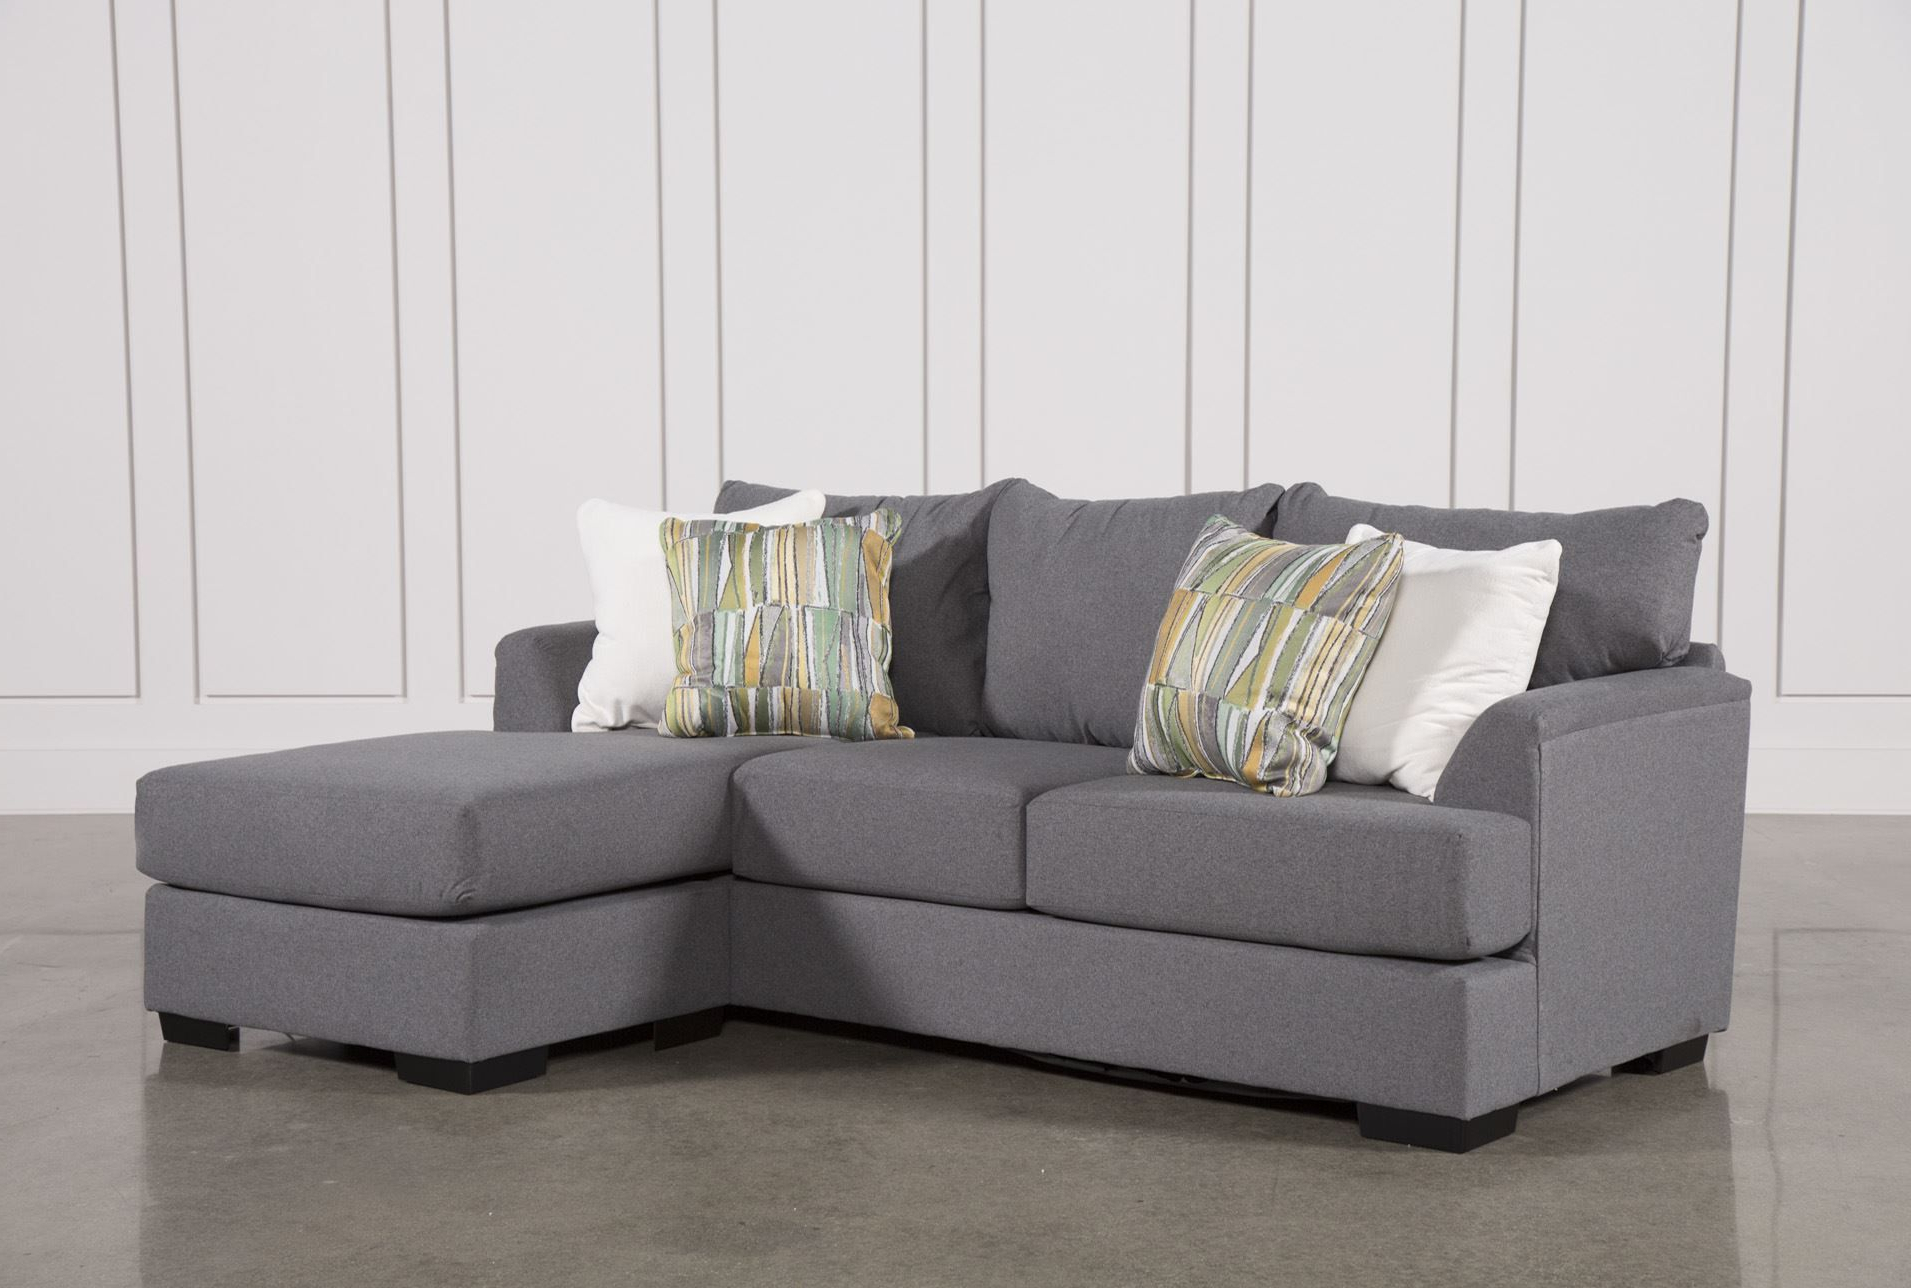 Mcculla Sofa Sectionals With Reversible Chaise Pertaining To Latest Keegan Sofa W/reversible Chaise (View 13 of 20)